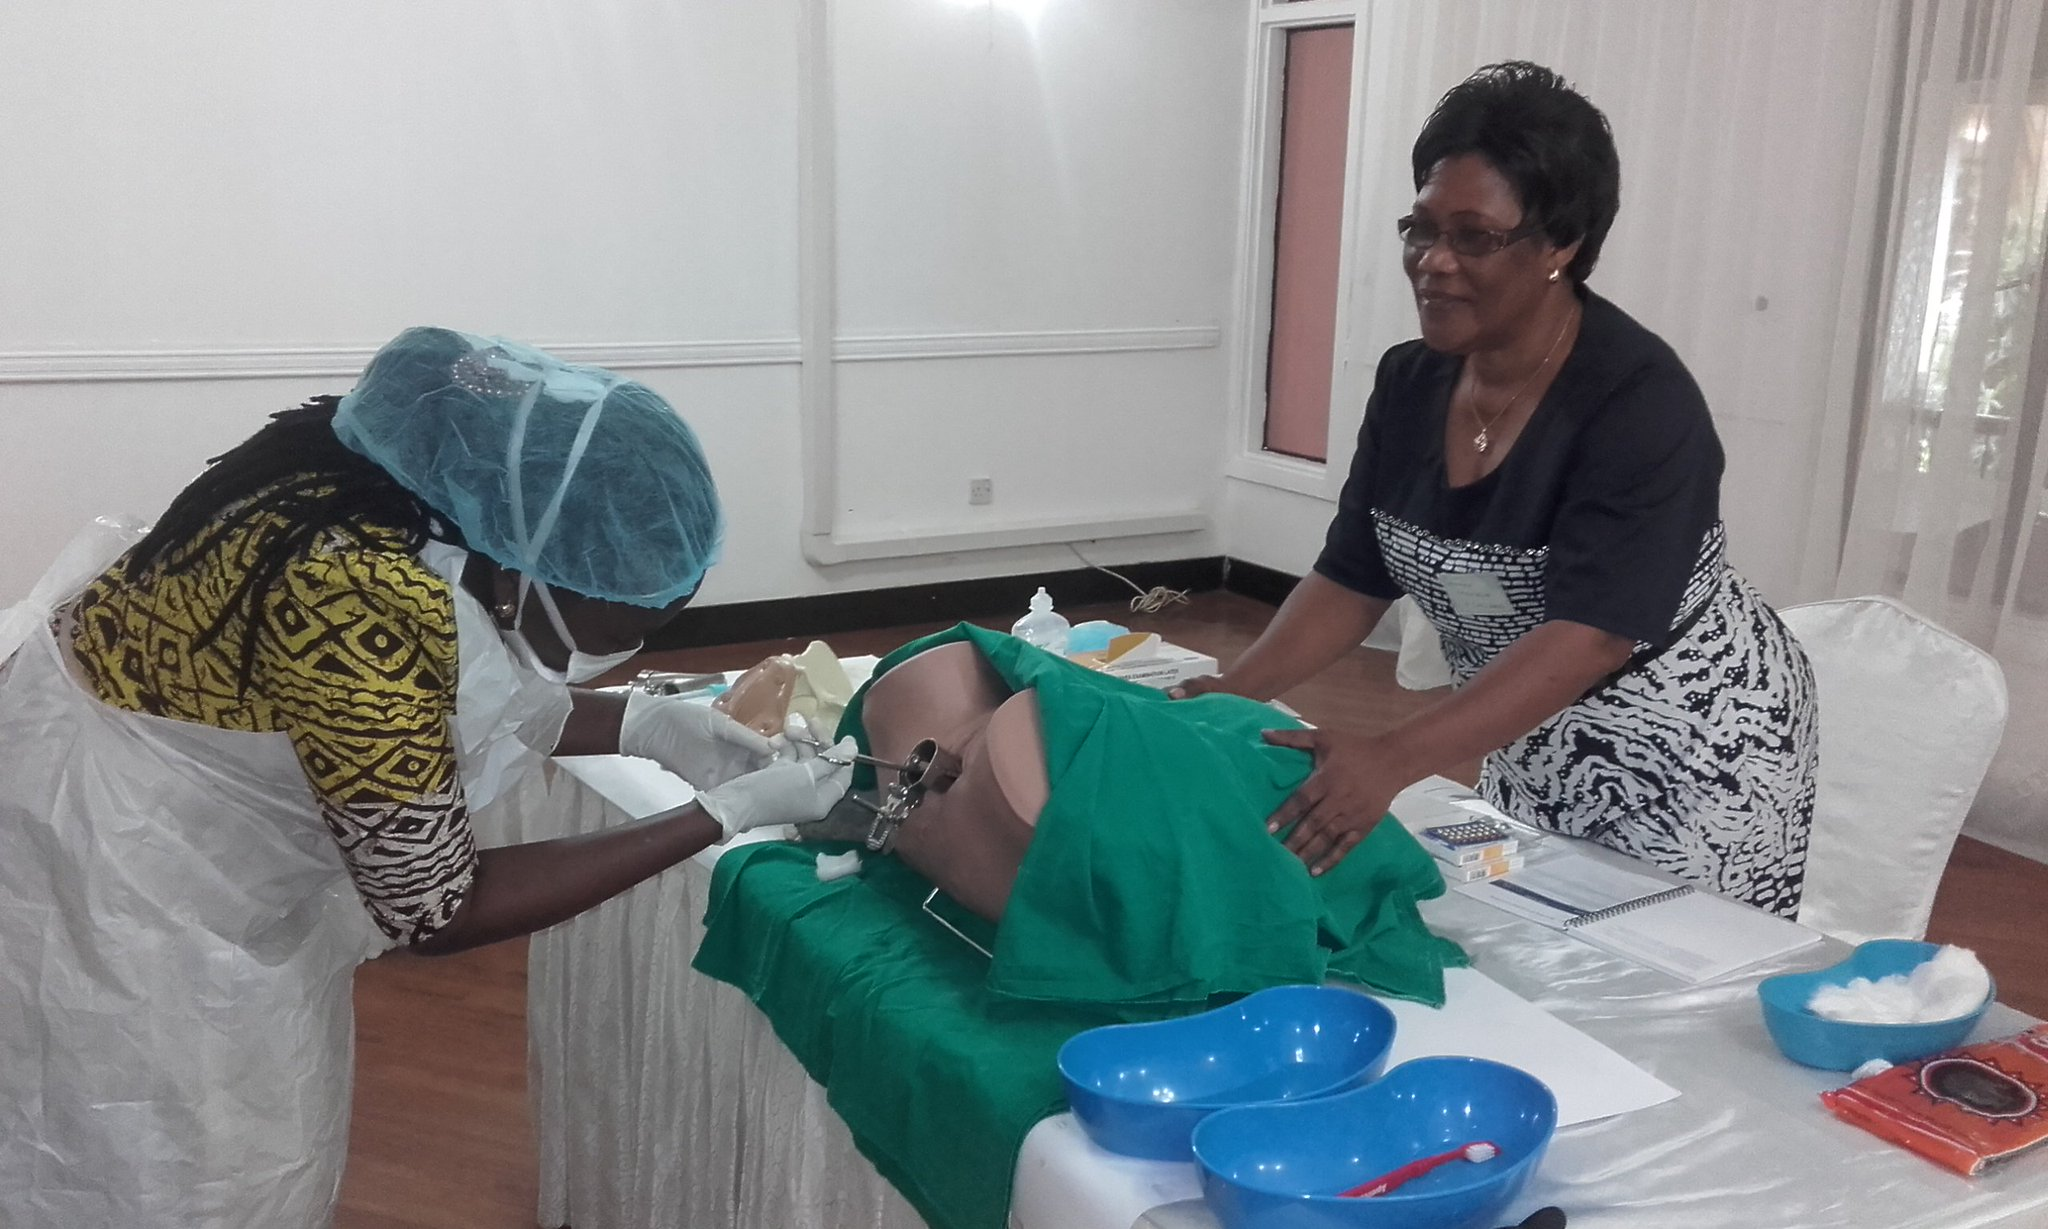 Learning Manual Vacuum Aspiration on @RCObsGyn #LeadingSafeChoices postabortion care training in Tanzania https://t.co/km1yG3F85q